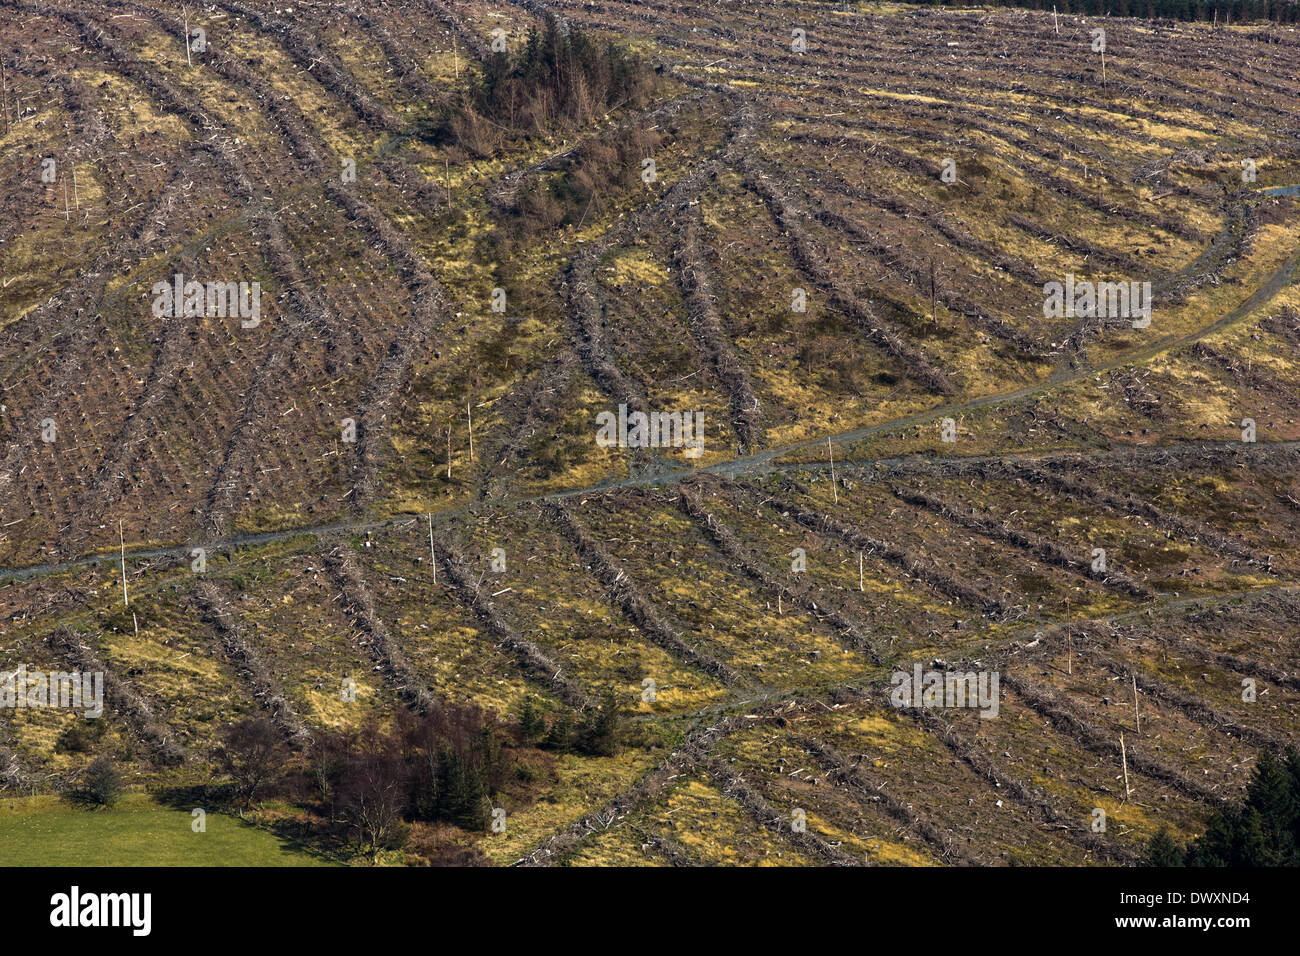 Abstract ridge patterns formed by forestry operations on a mountainside in mid Wales - Stock Image